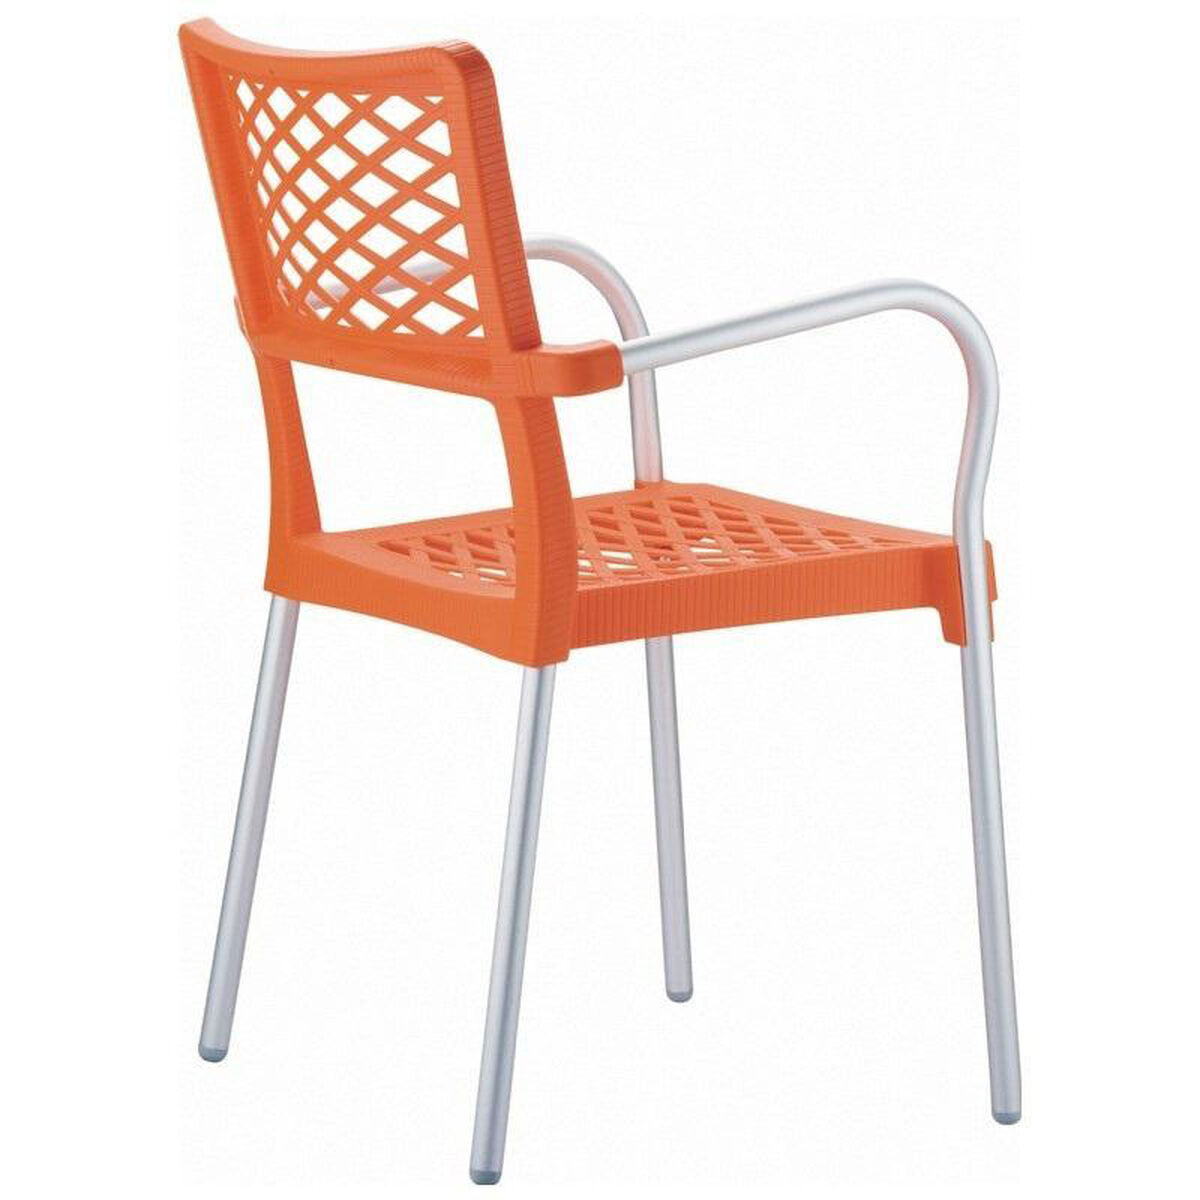 Bella resin stackable dining arm chair with aluminum frame